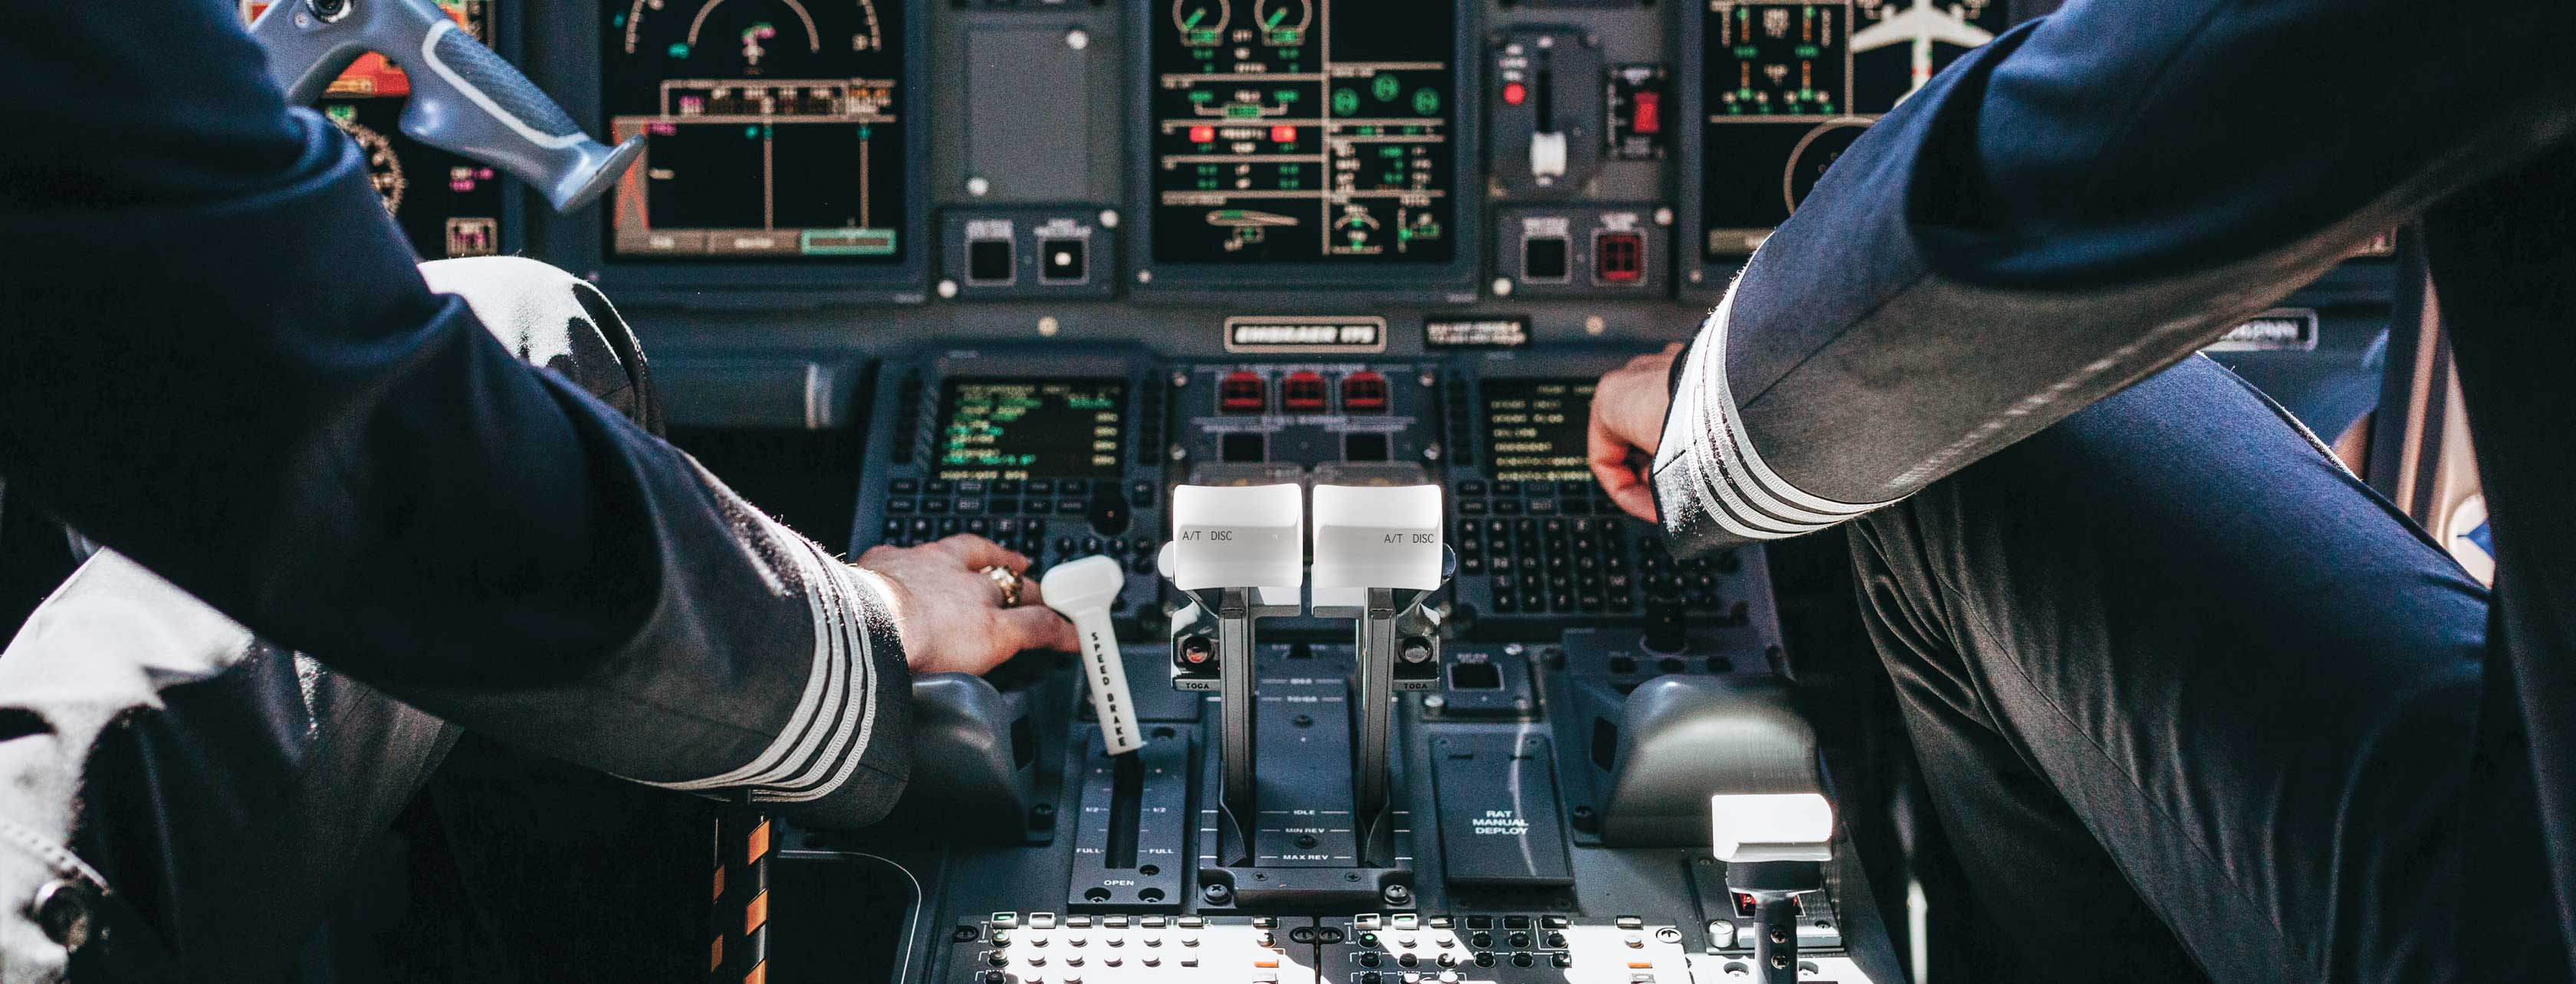 Senior Captains Earn the Most Airline Pilot Salary